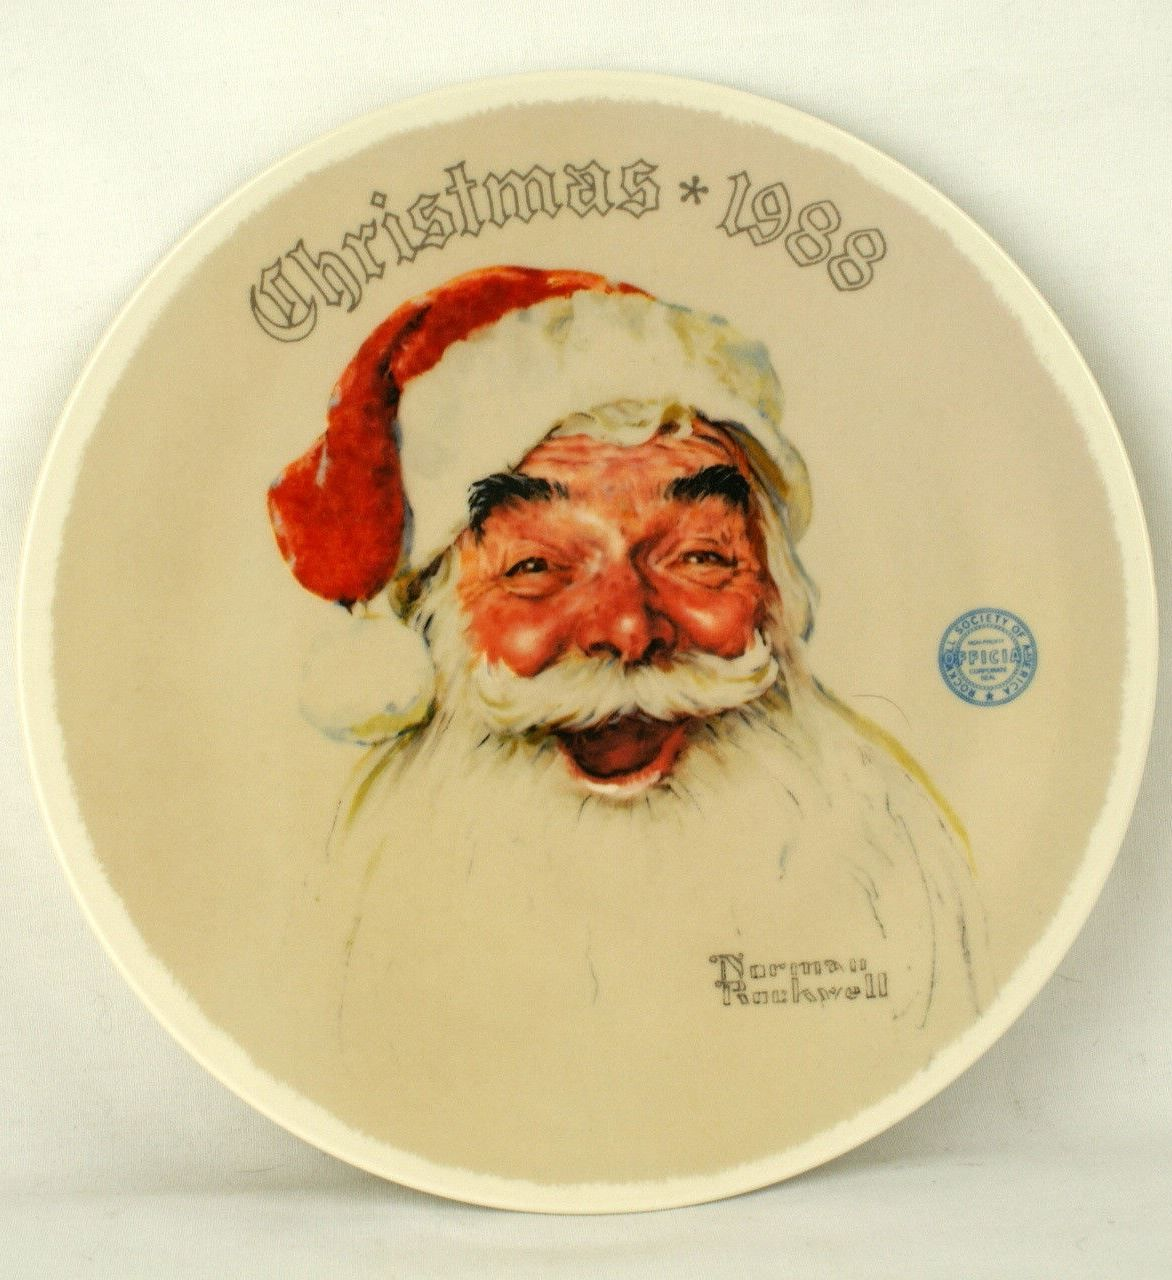 What a classic Santa Claus image! This is a vintage Norman Rockwell ...